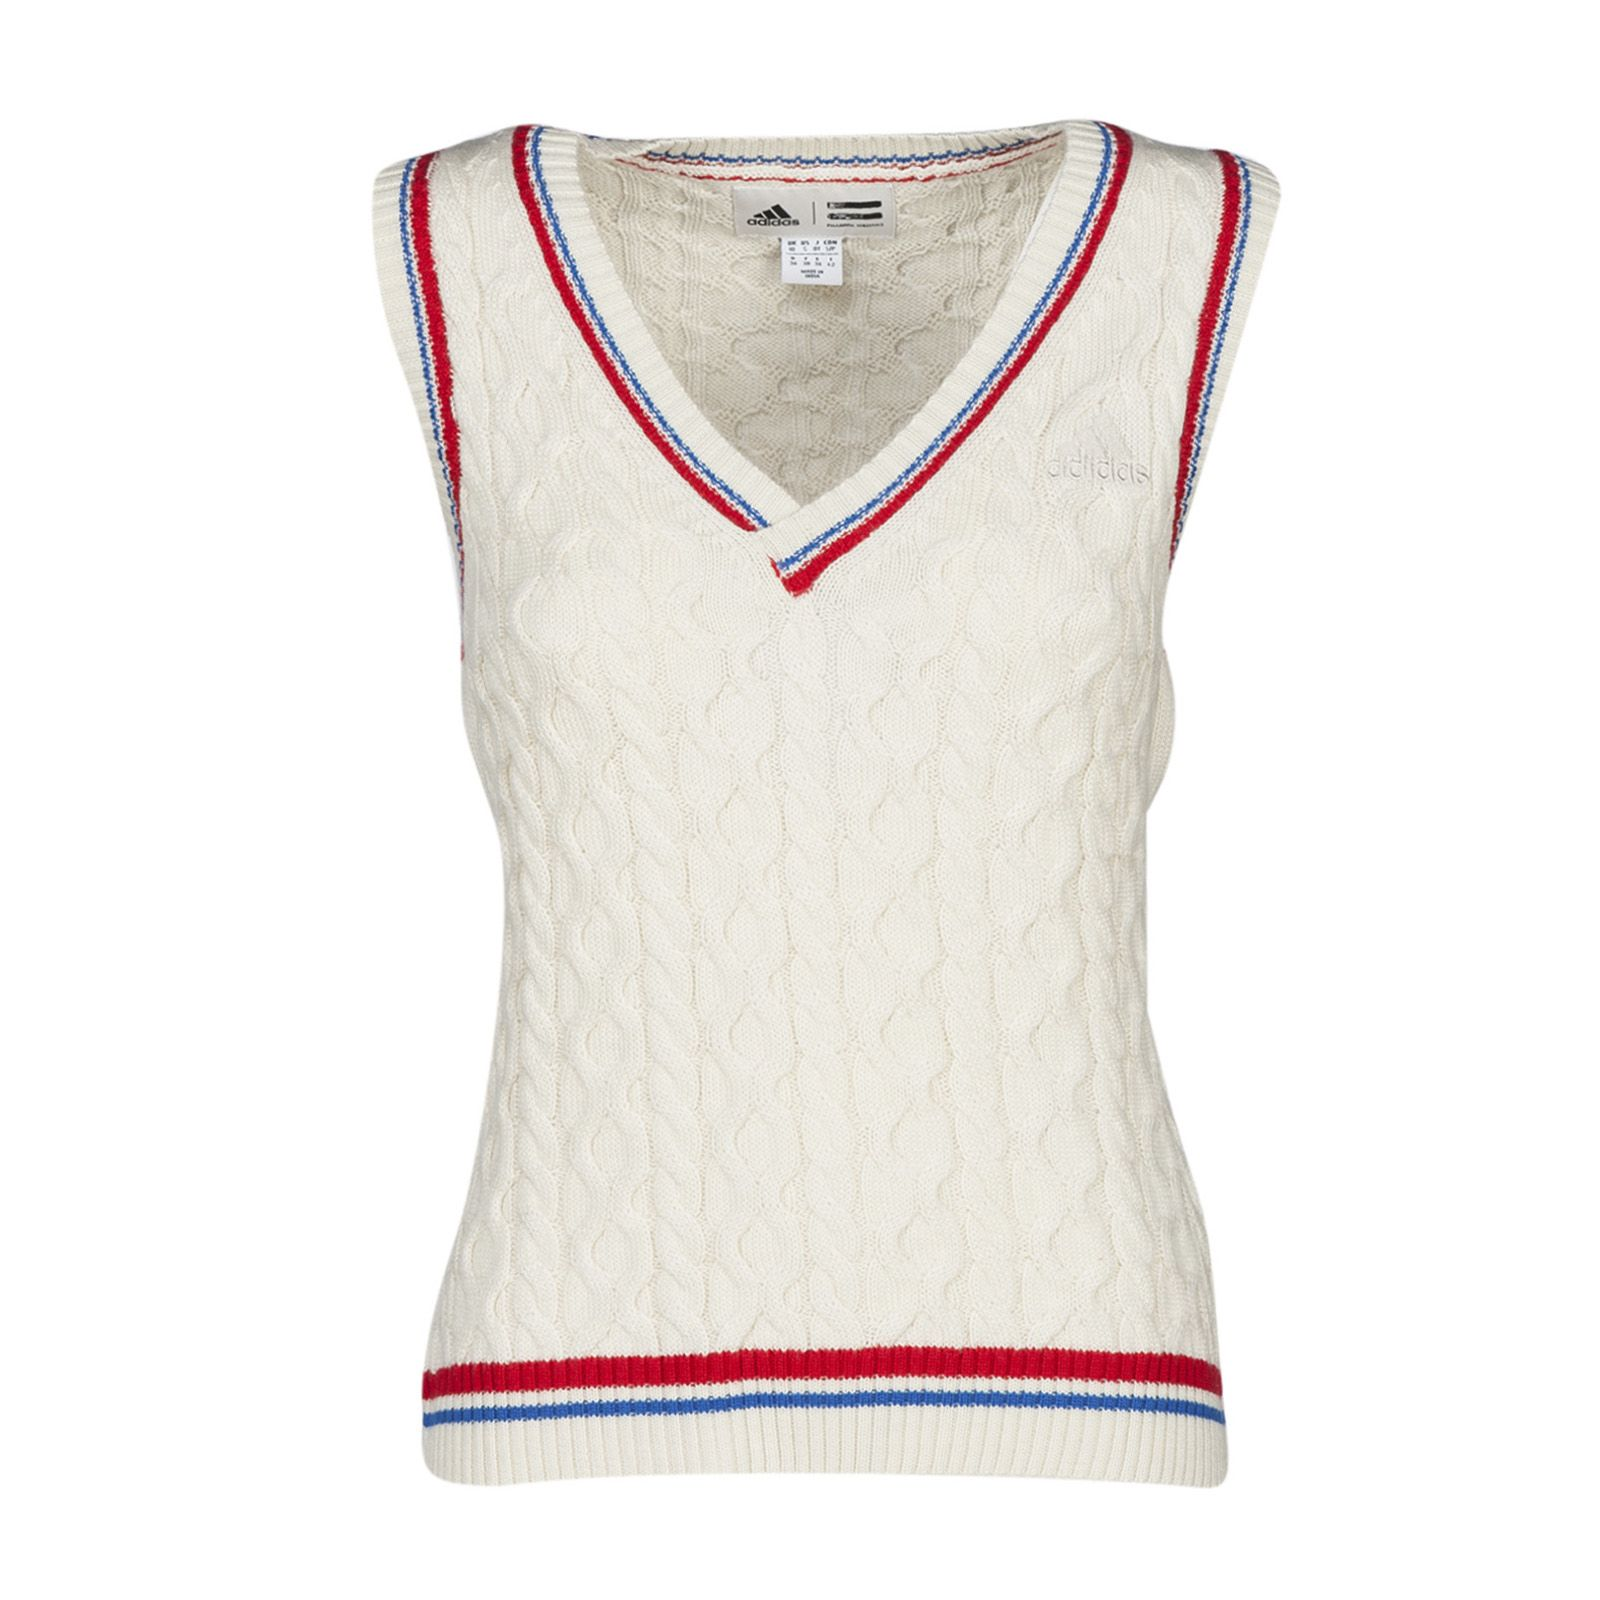 Adidas New York Cable Knit Vest